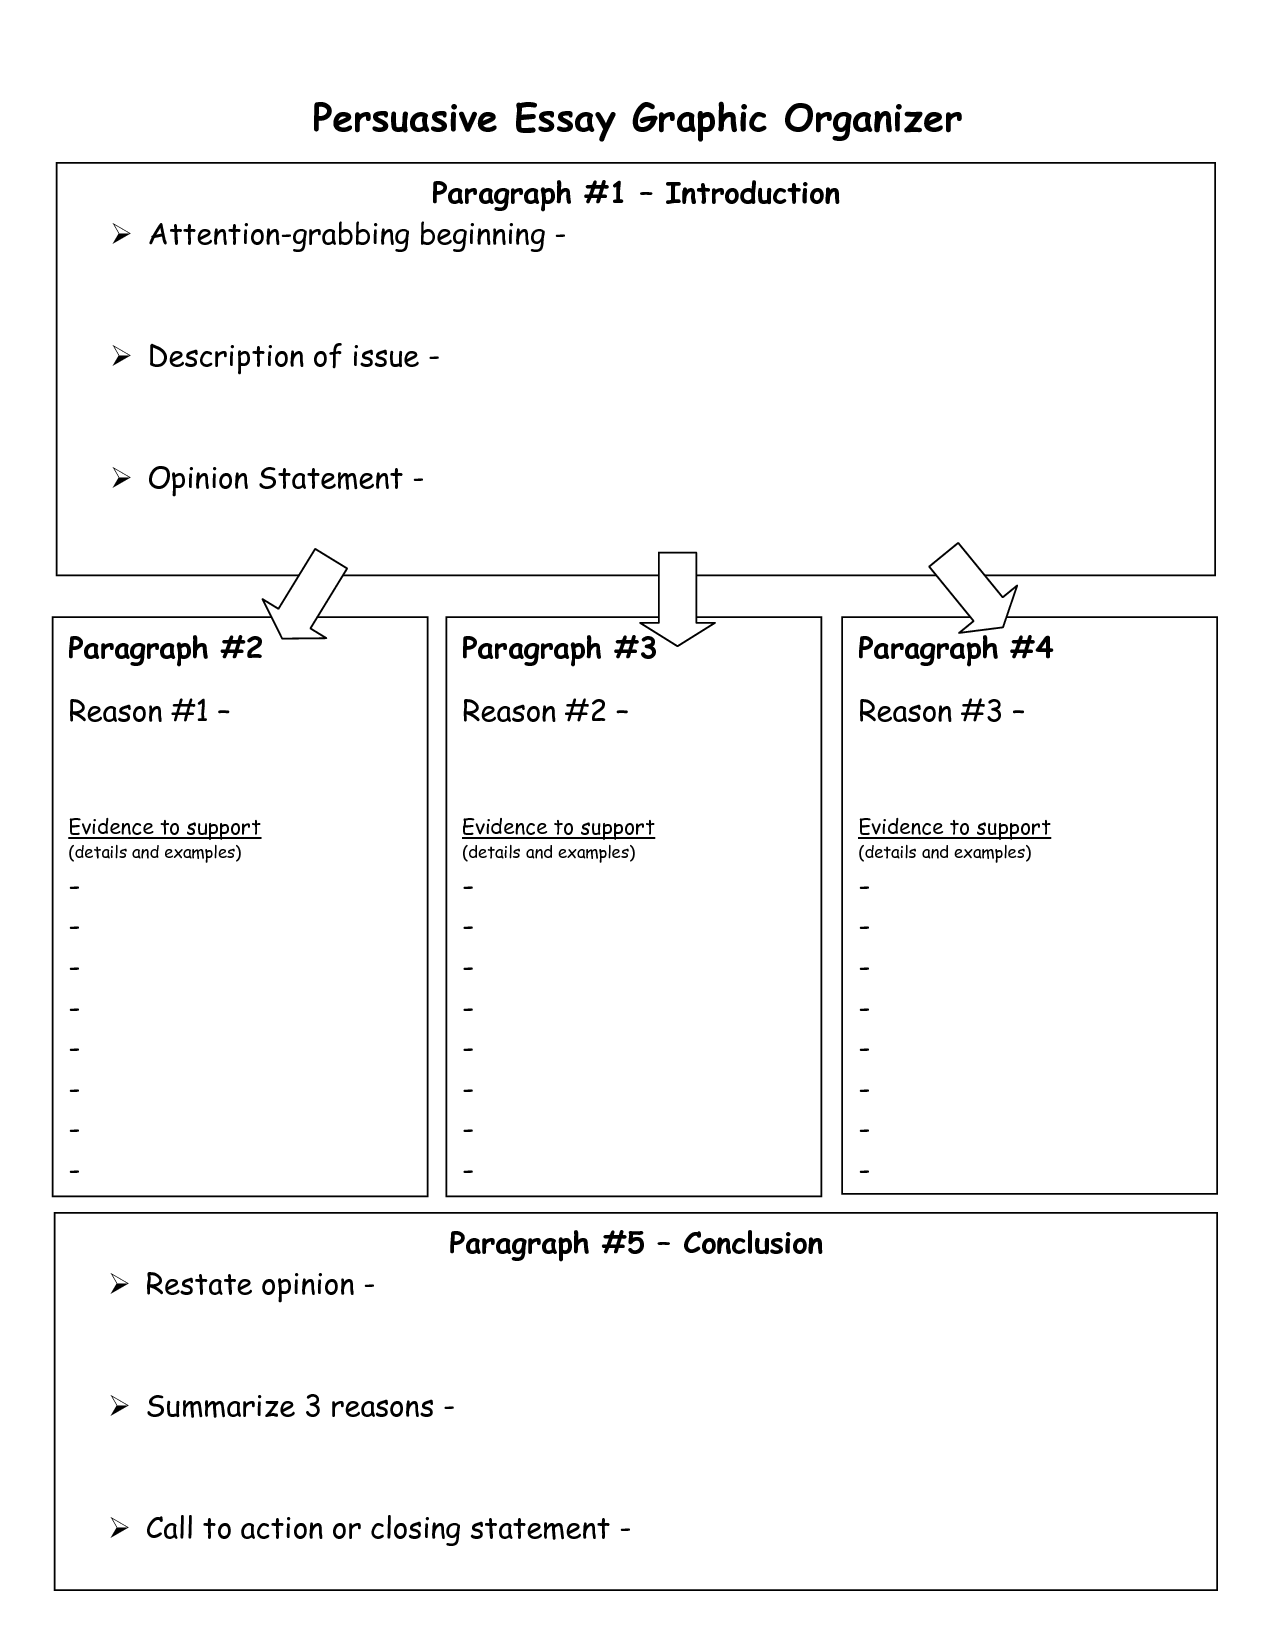 writing graphic organizers persuasive essay graphic organizer 15 best images of argument writing graphic organizers brainstorming argument writing graphic organizer paragraph essay graphic organizer and persuasive